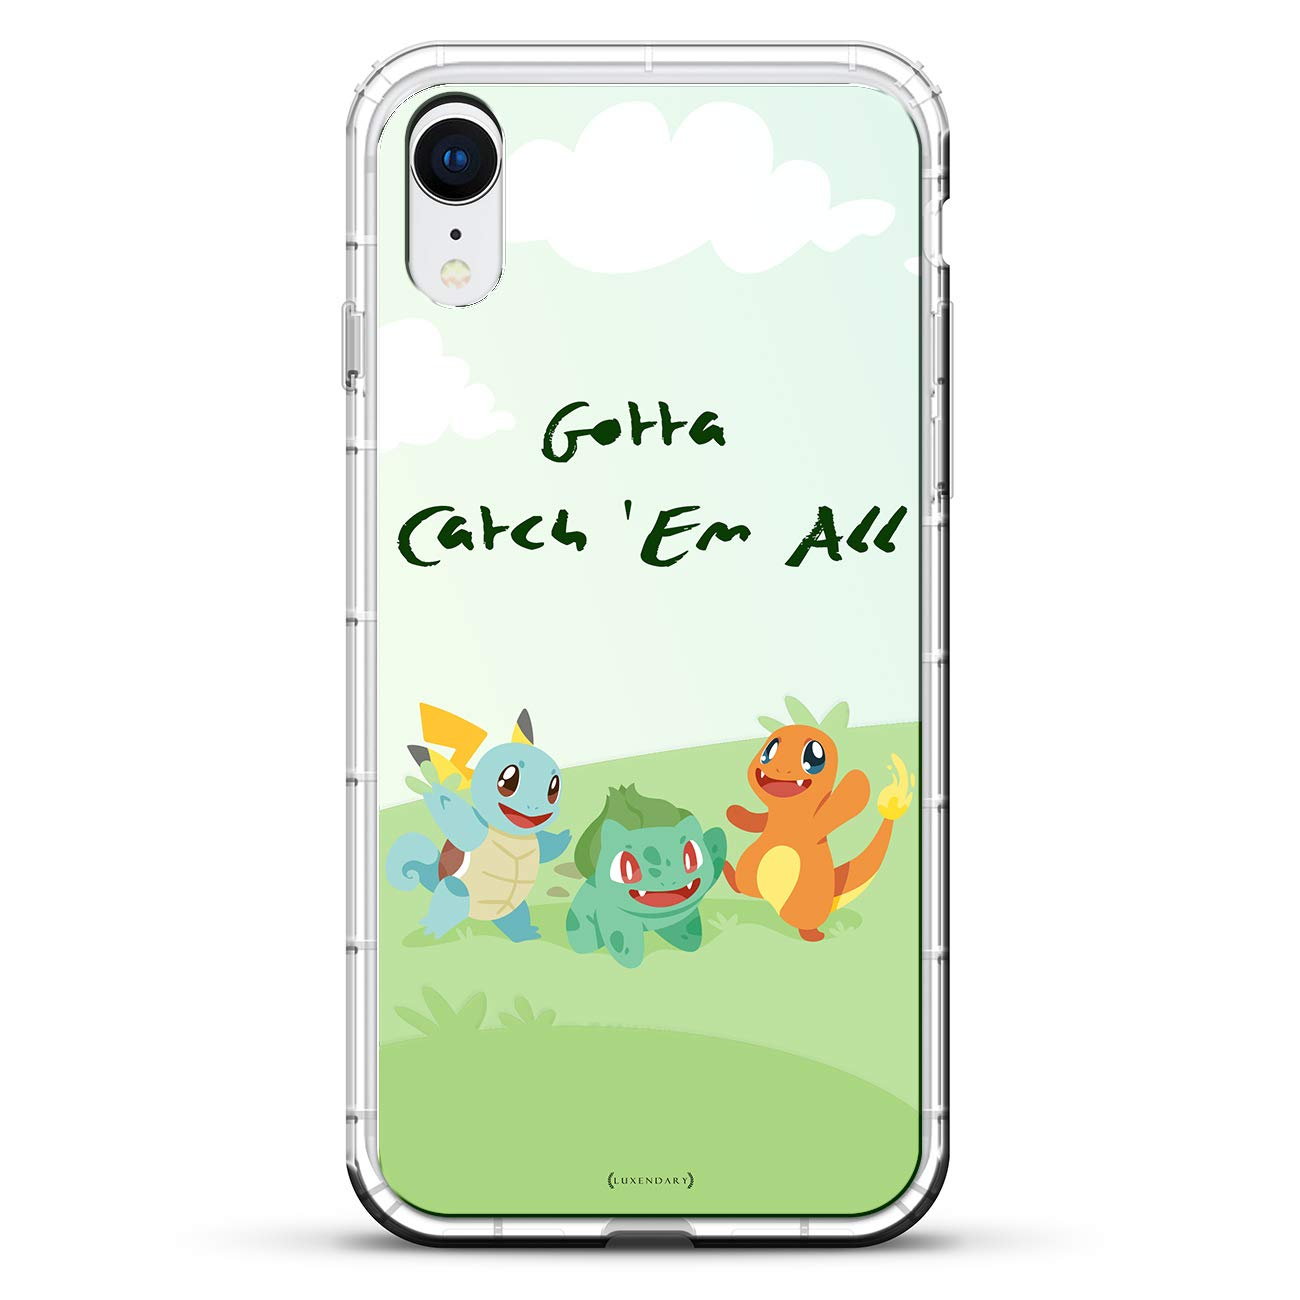 Pokemon Go Catch Em All | Luxendary Air Series Clear Silicone Case with 3D printed design and Air-Pocket Cushion Bumper for iPhone XR (new 2018/2019 model ...